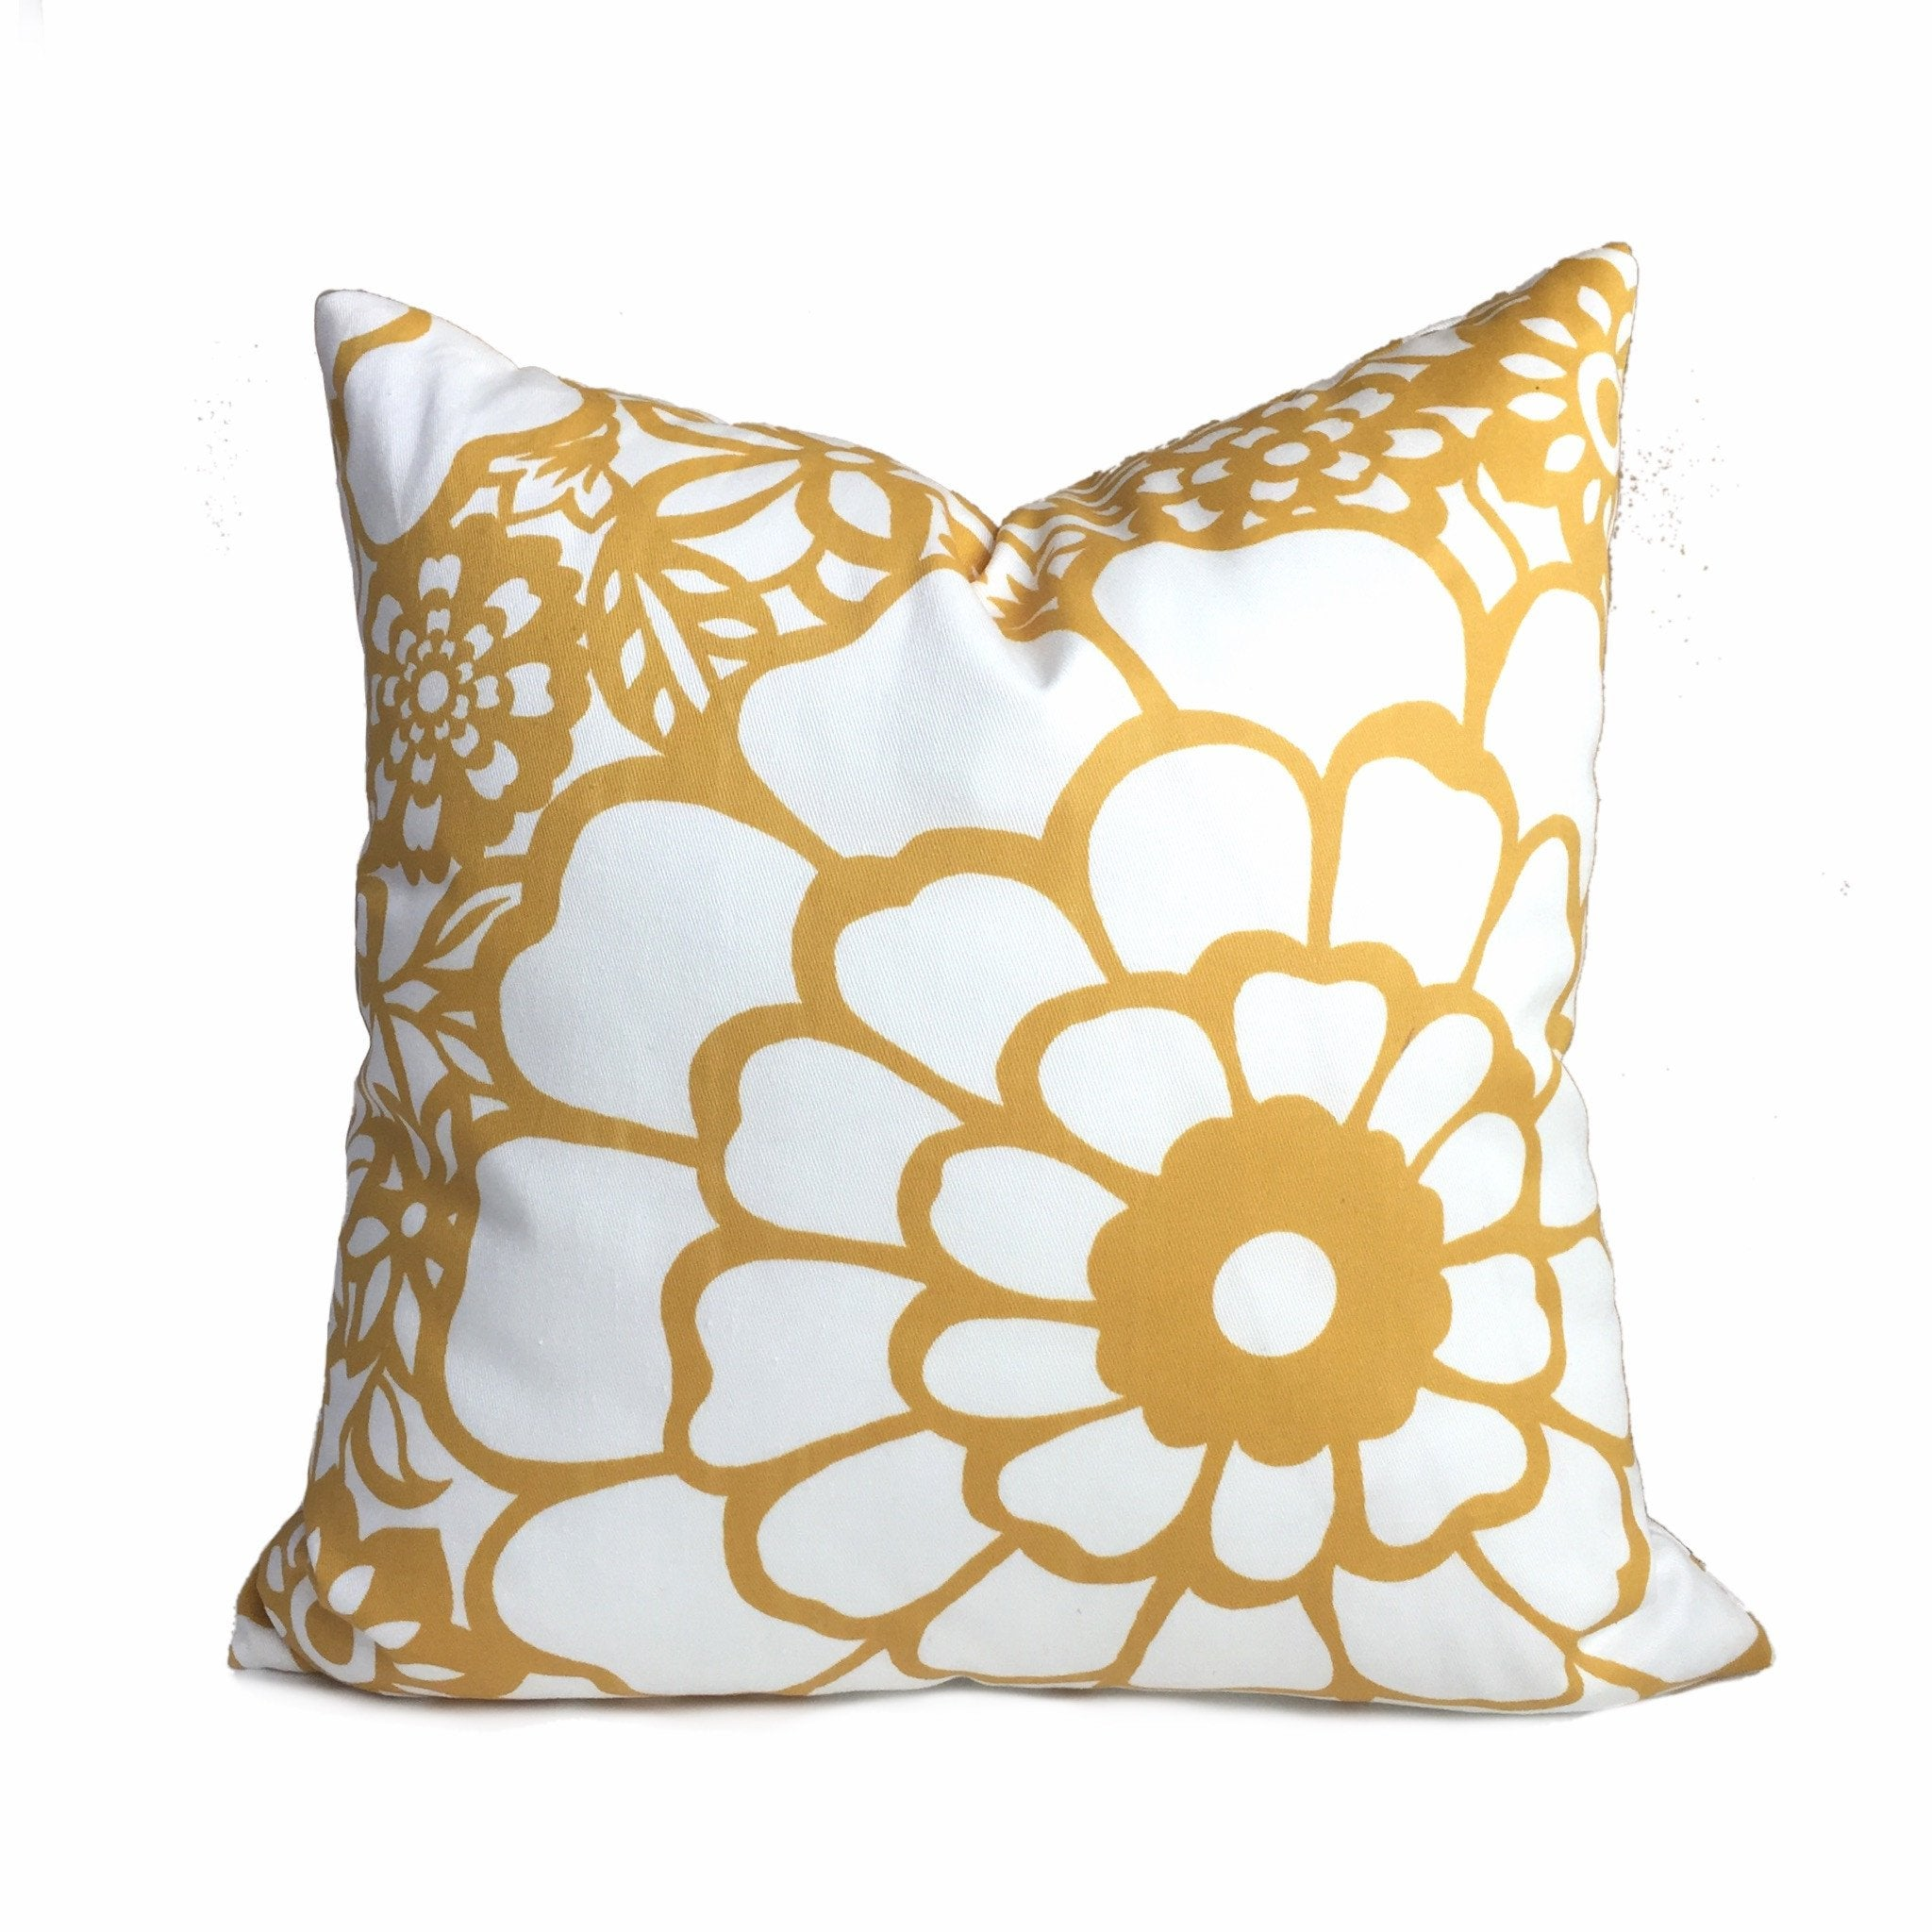 Thomas Paul Seedlings Fiesta Yellow White Floral Pillow Cover by Aloriam